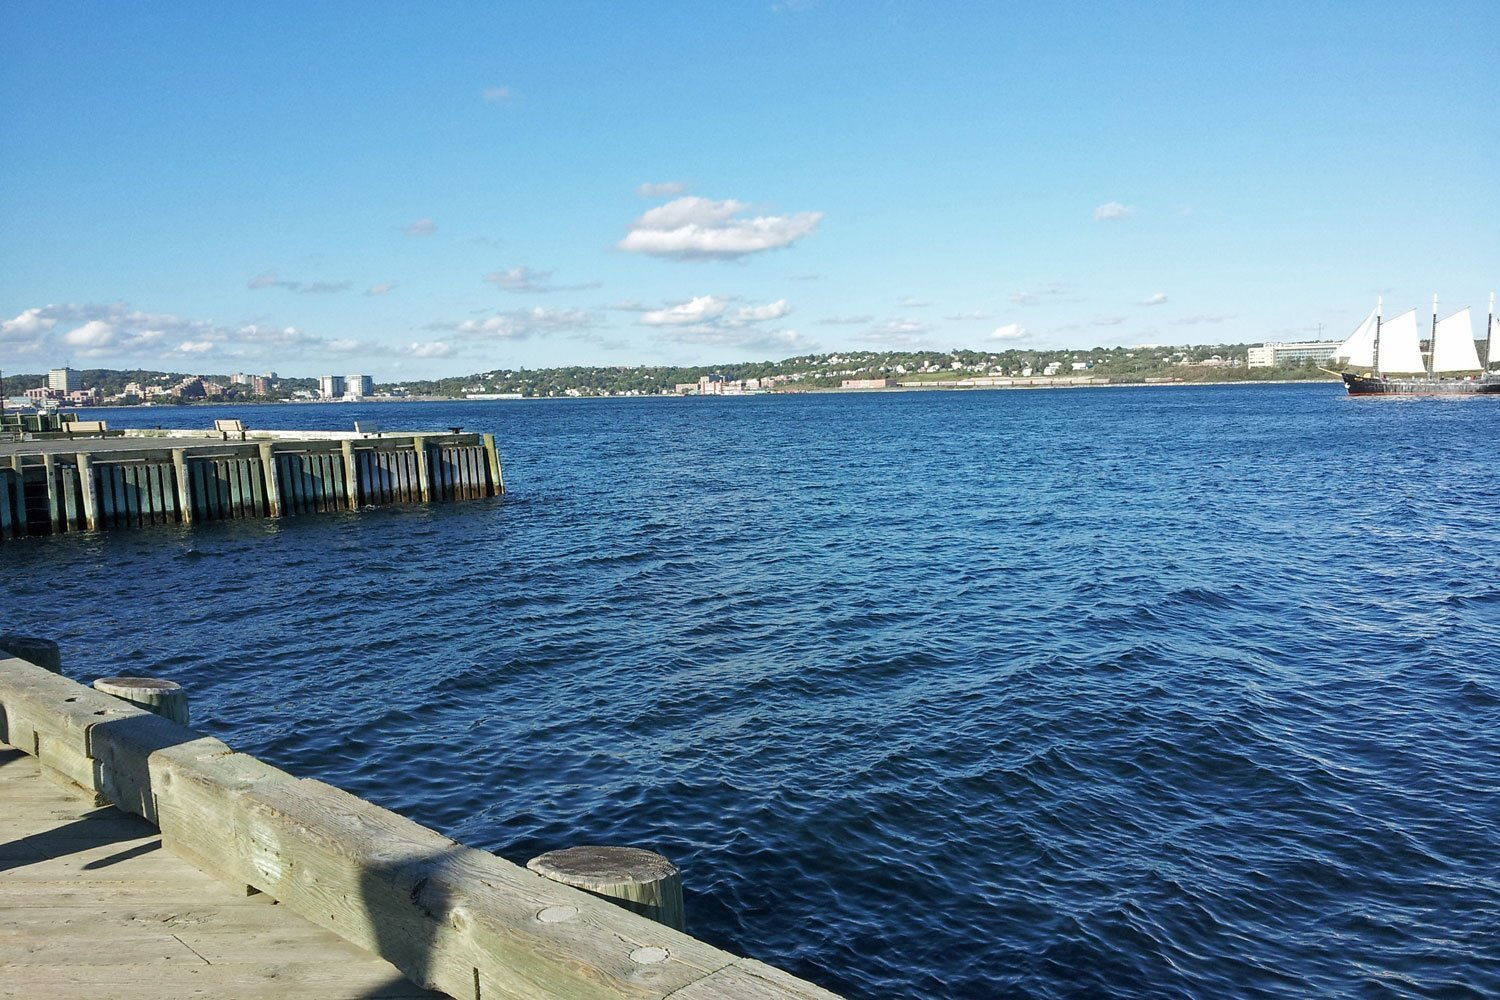 Watch the ships and sailboats in Halifax Harbour from its wooden boardwalk